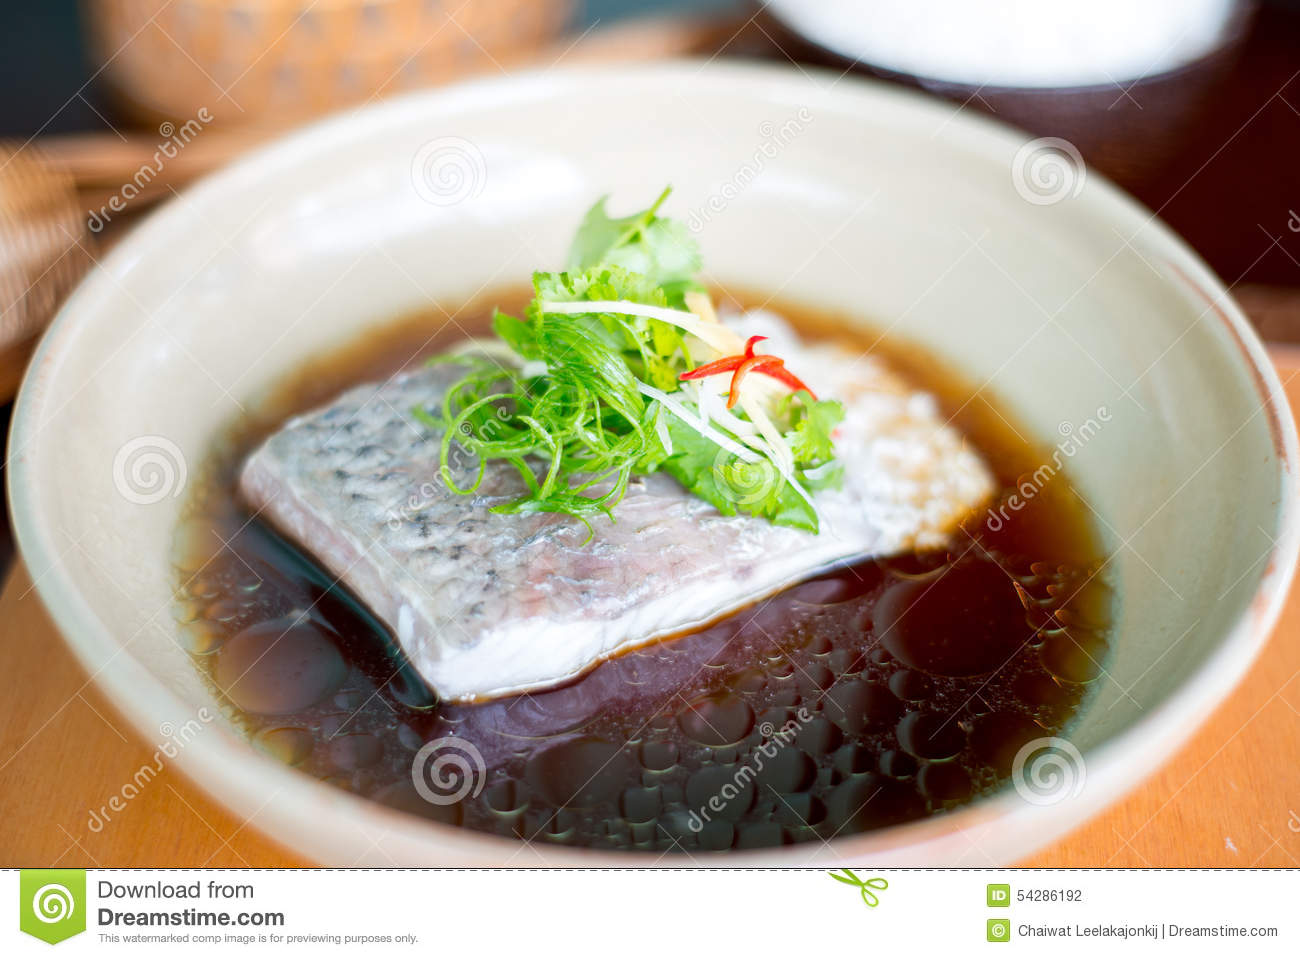 Steam fish in soy sauce stock photo image 54286192 for Soy sauce fish